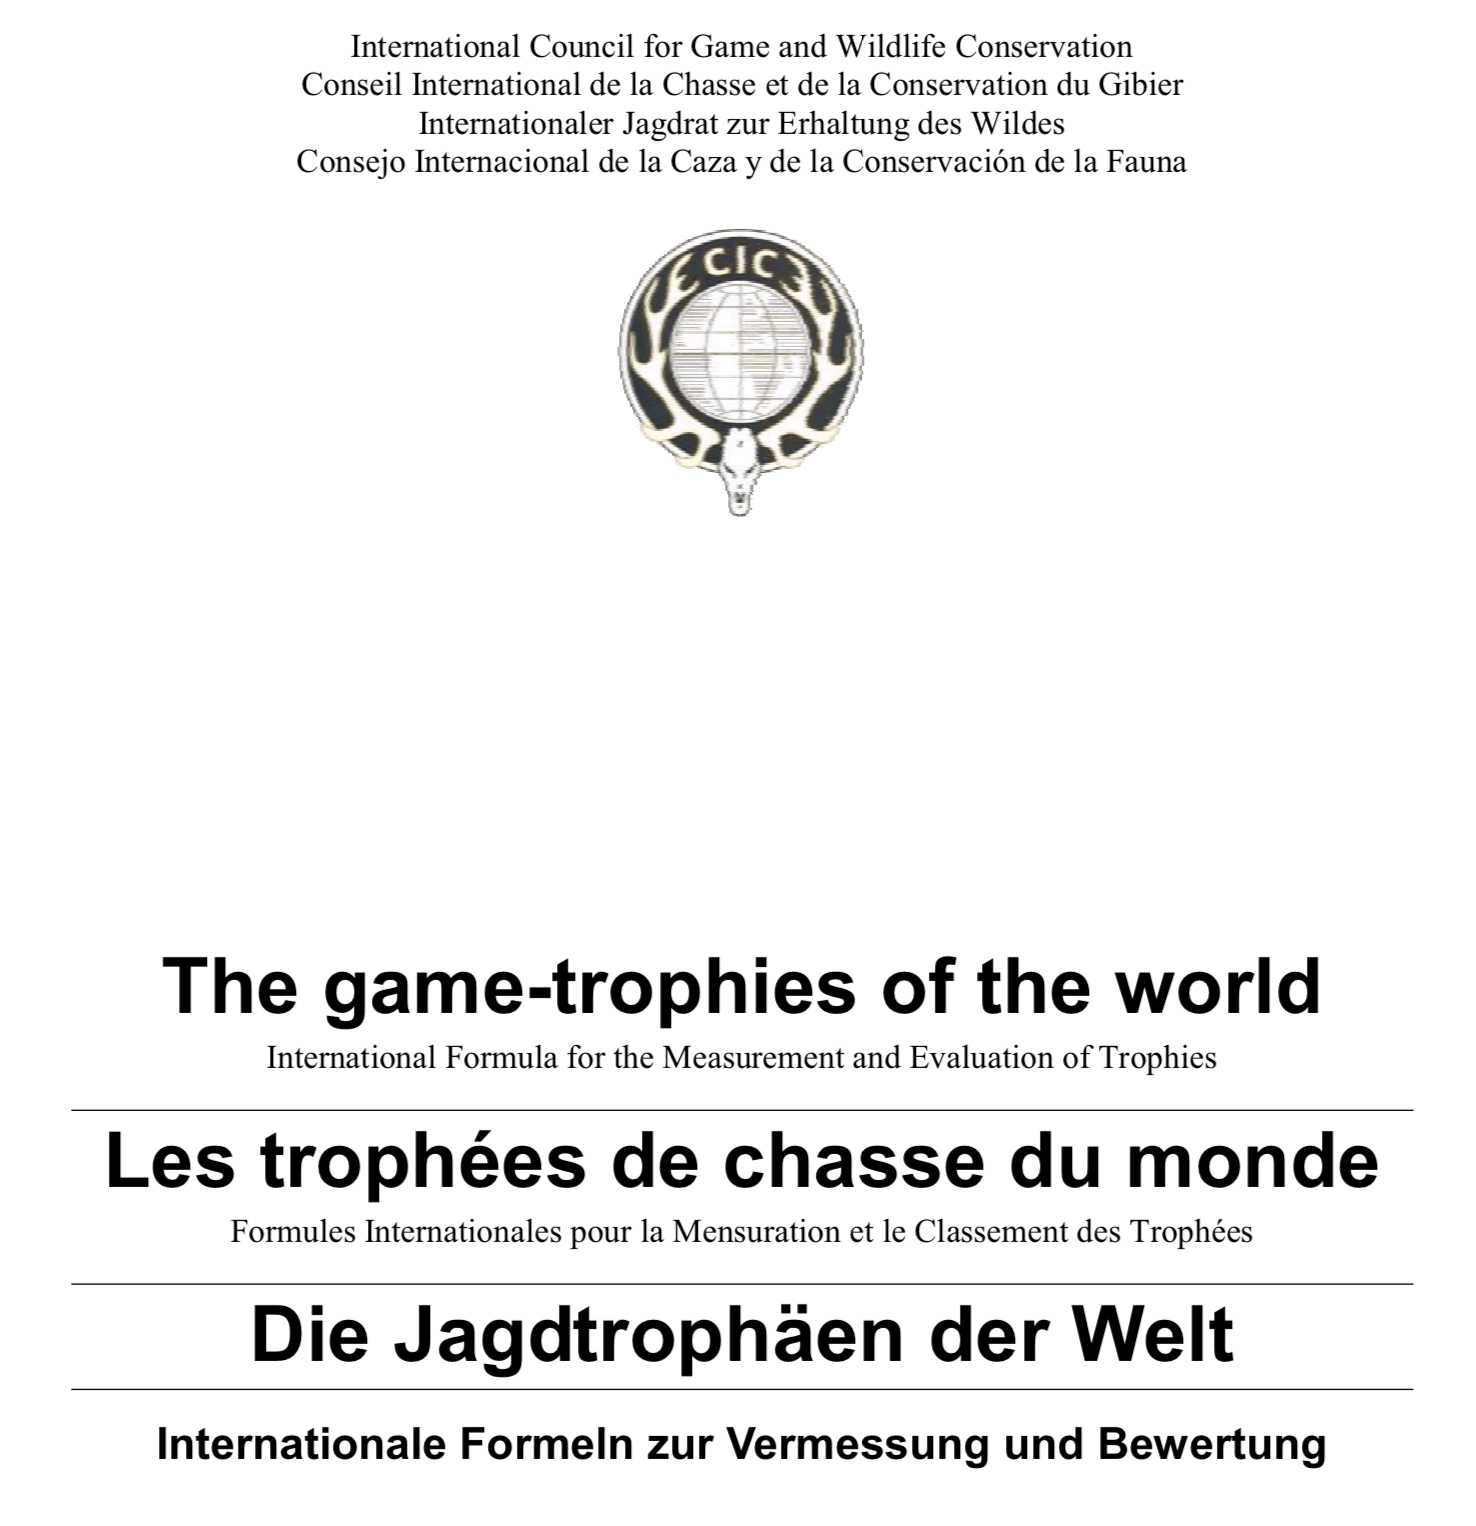 cic-the-game-trophies-of-the-world.jpg